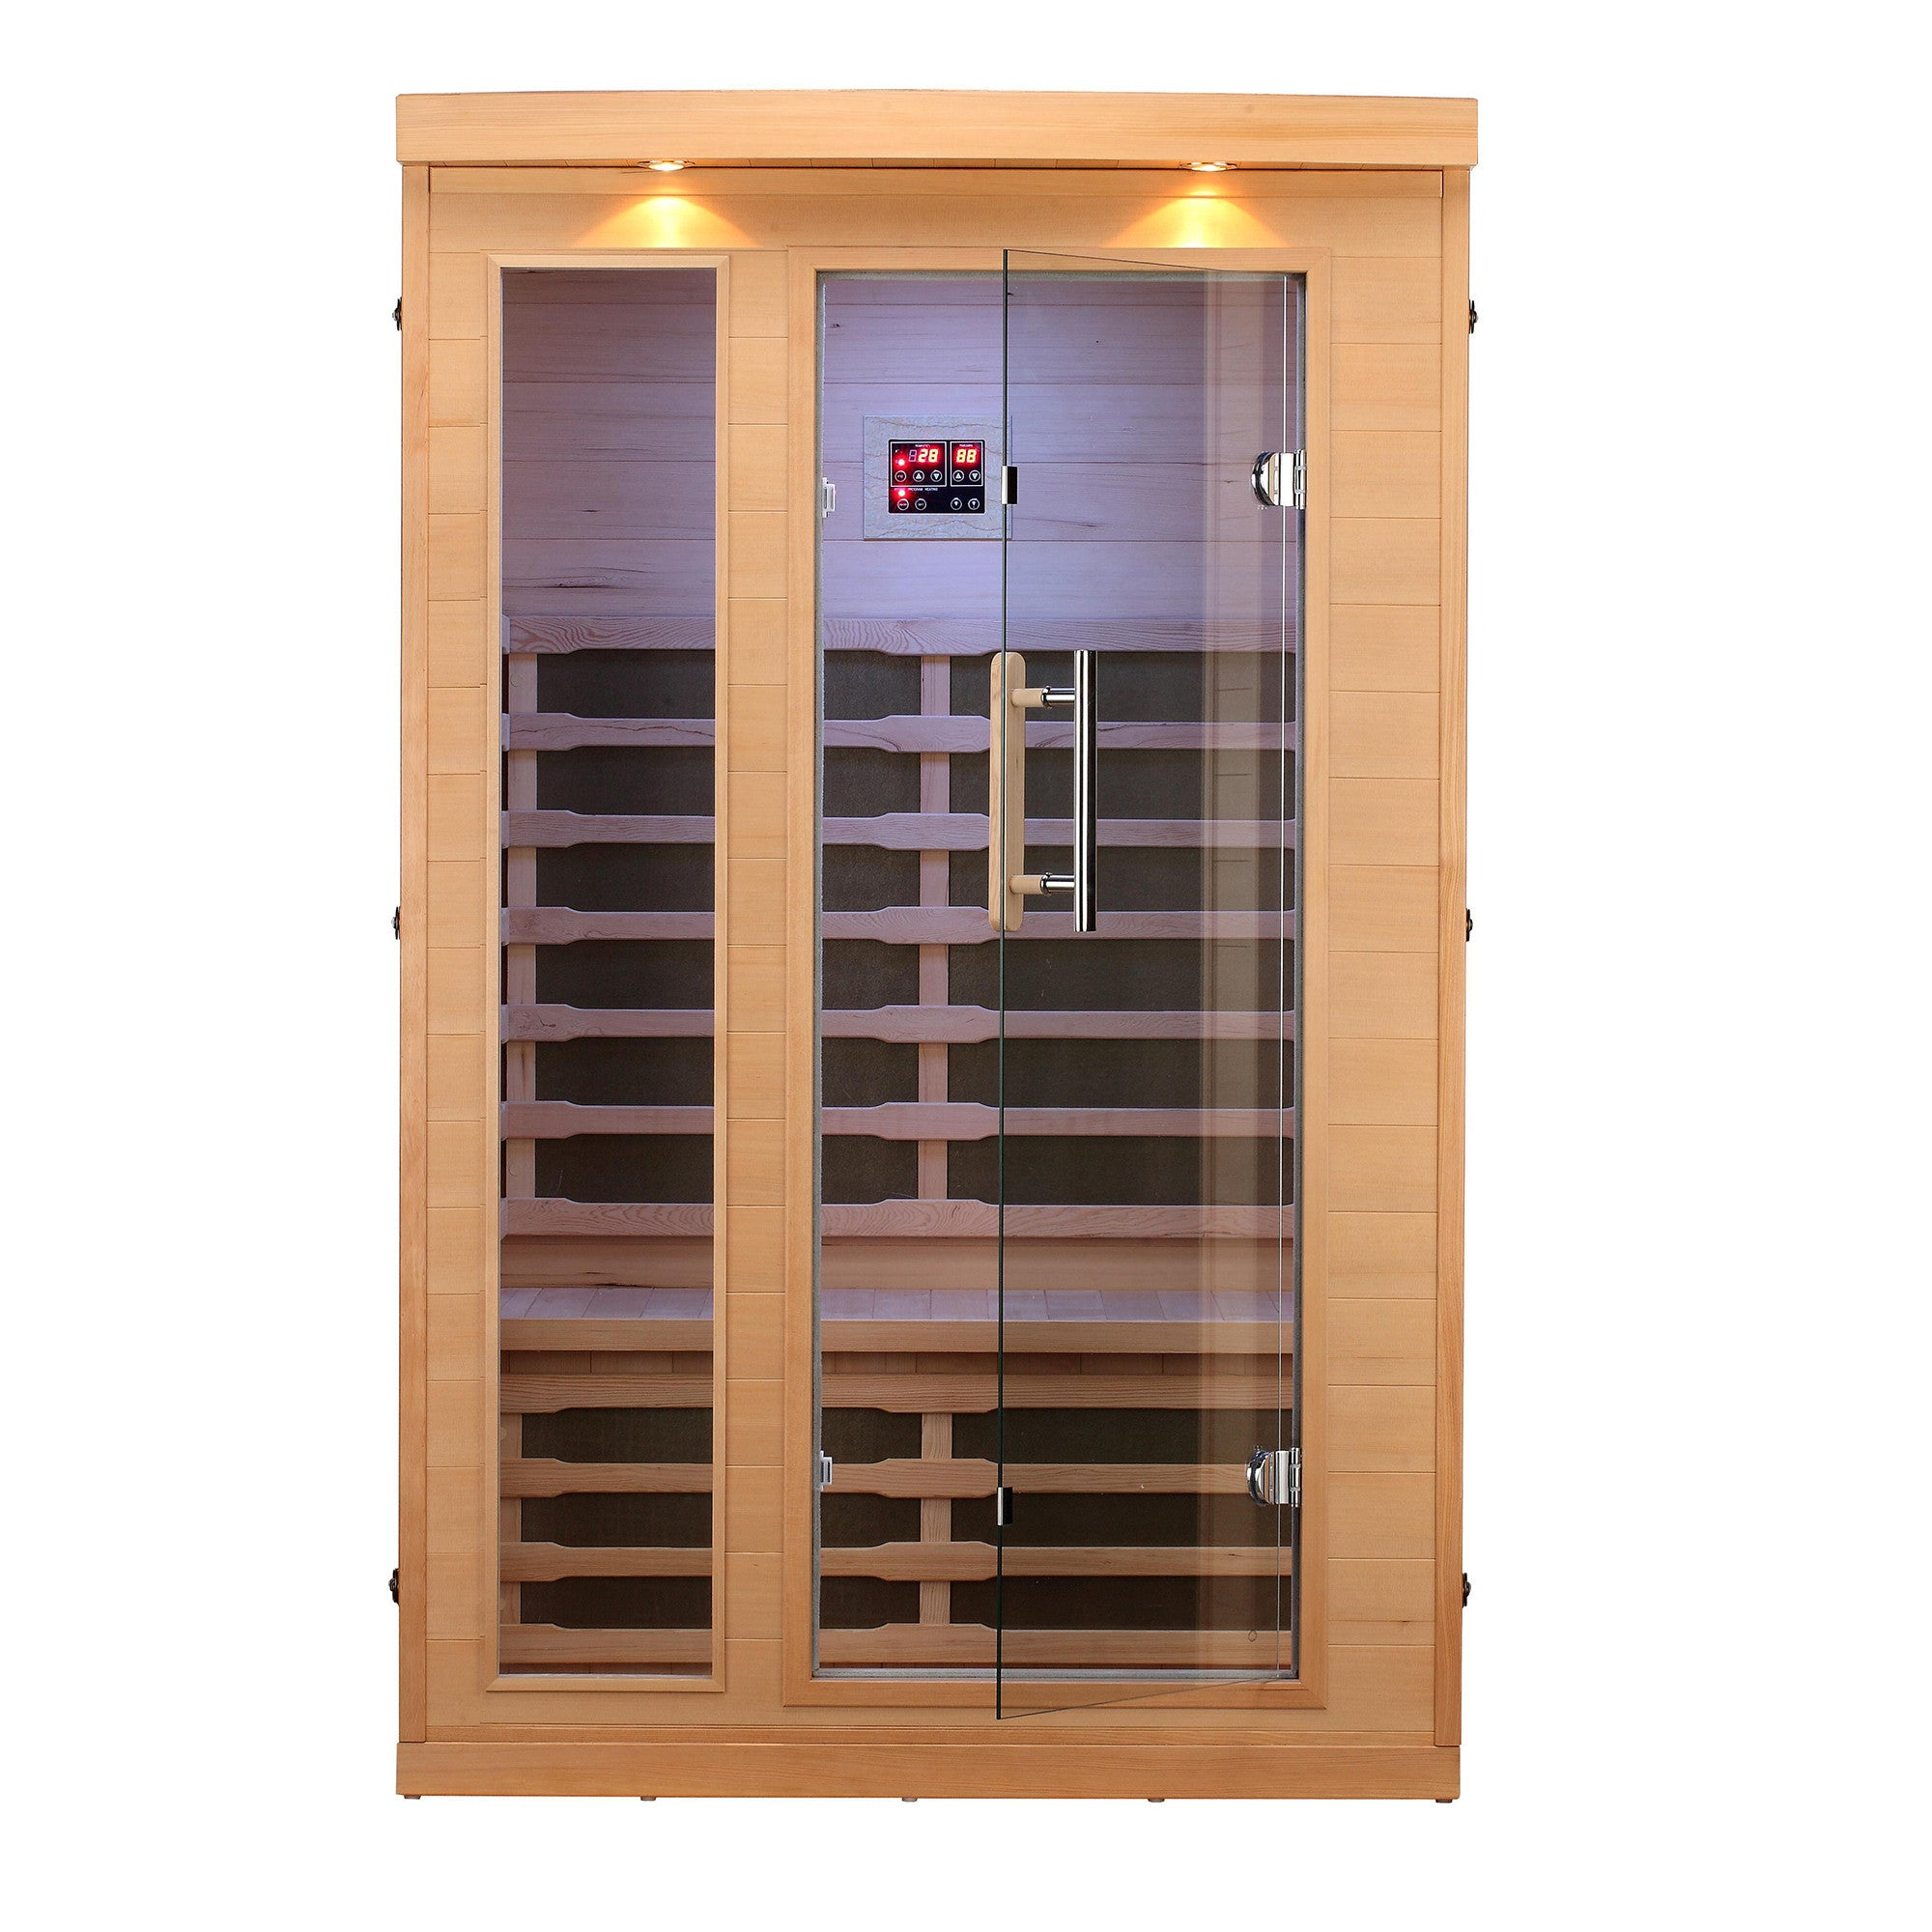 huron 2 person far infrared sauna canadian spa company us. Black Bedroom Furniture Sets. Home Design Ideas